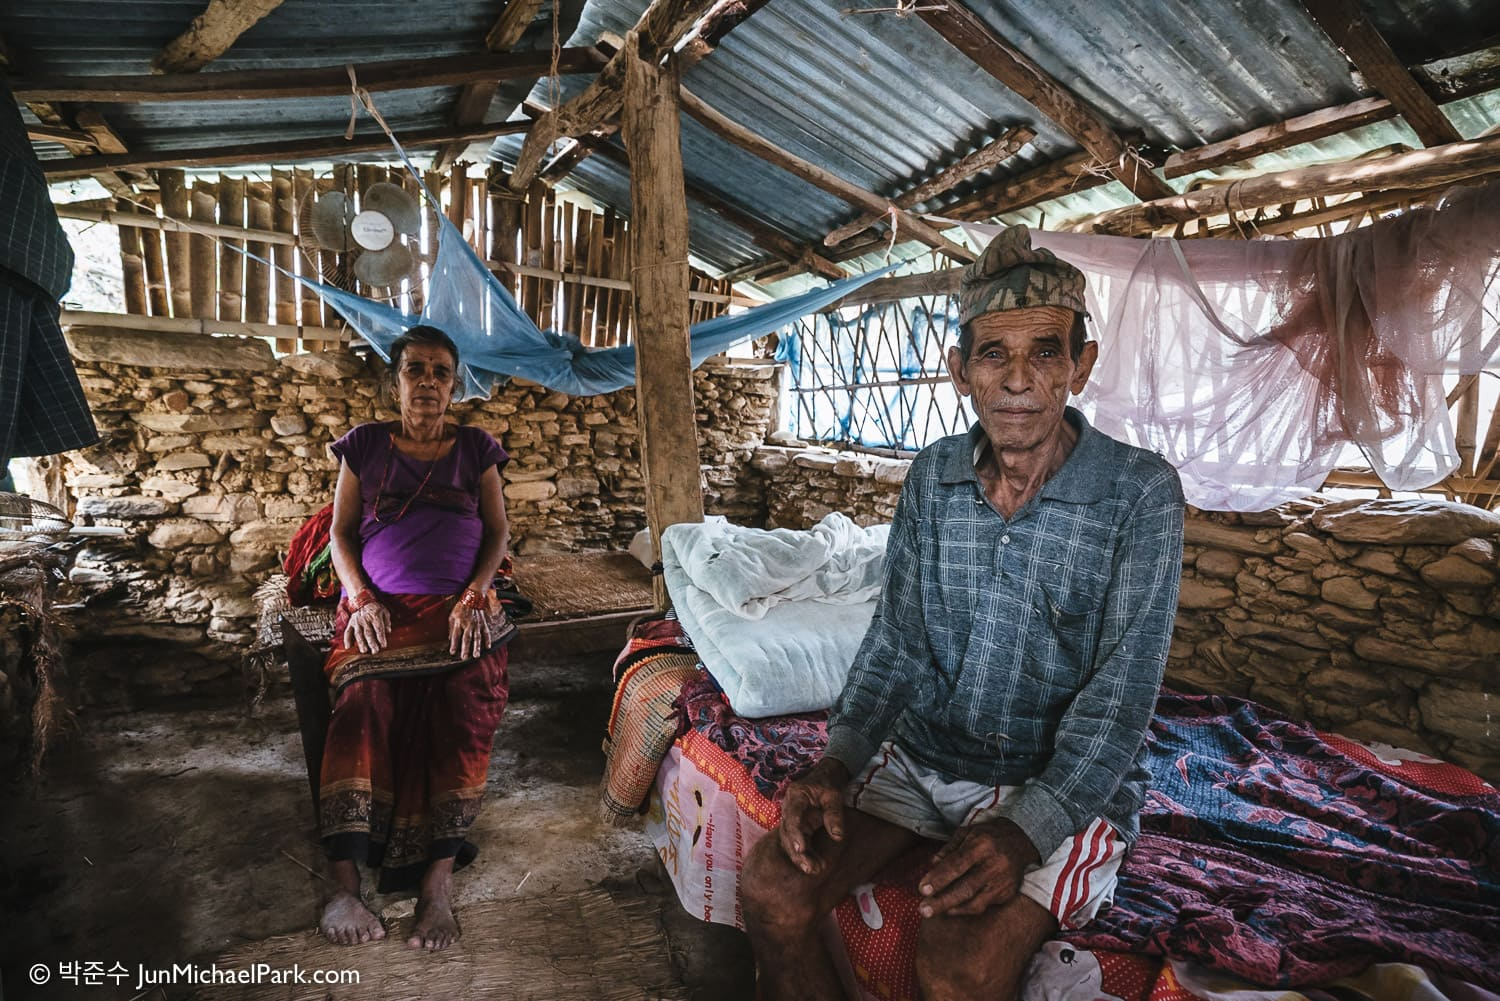 Rub Bahadur Thapa, 78(right), and Echha Kumari Thapa, 70, live in a remote village in Bhanu, Tanahun District, Nepal. Traumatized by the earthquake and aftershocks, they are too afraid to sleep in their house. Instead they sleep in a small barn with a makeshift tinplate roof. 28.10.15